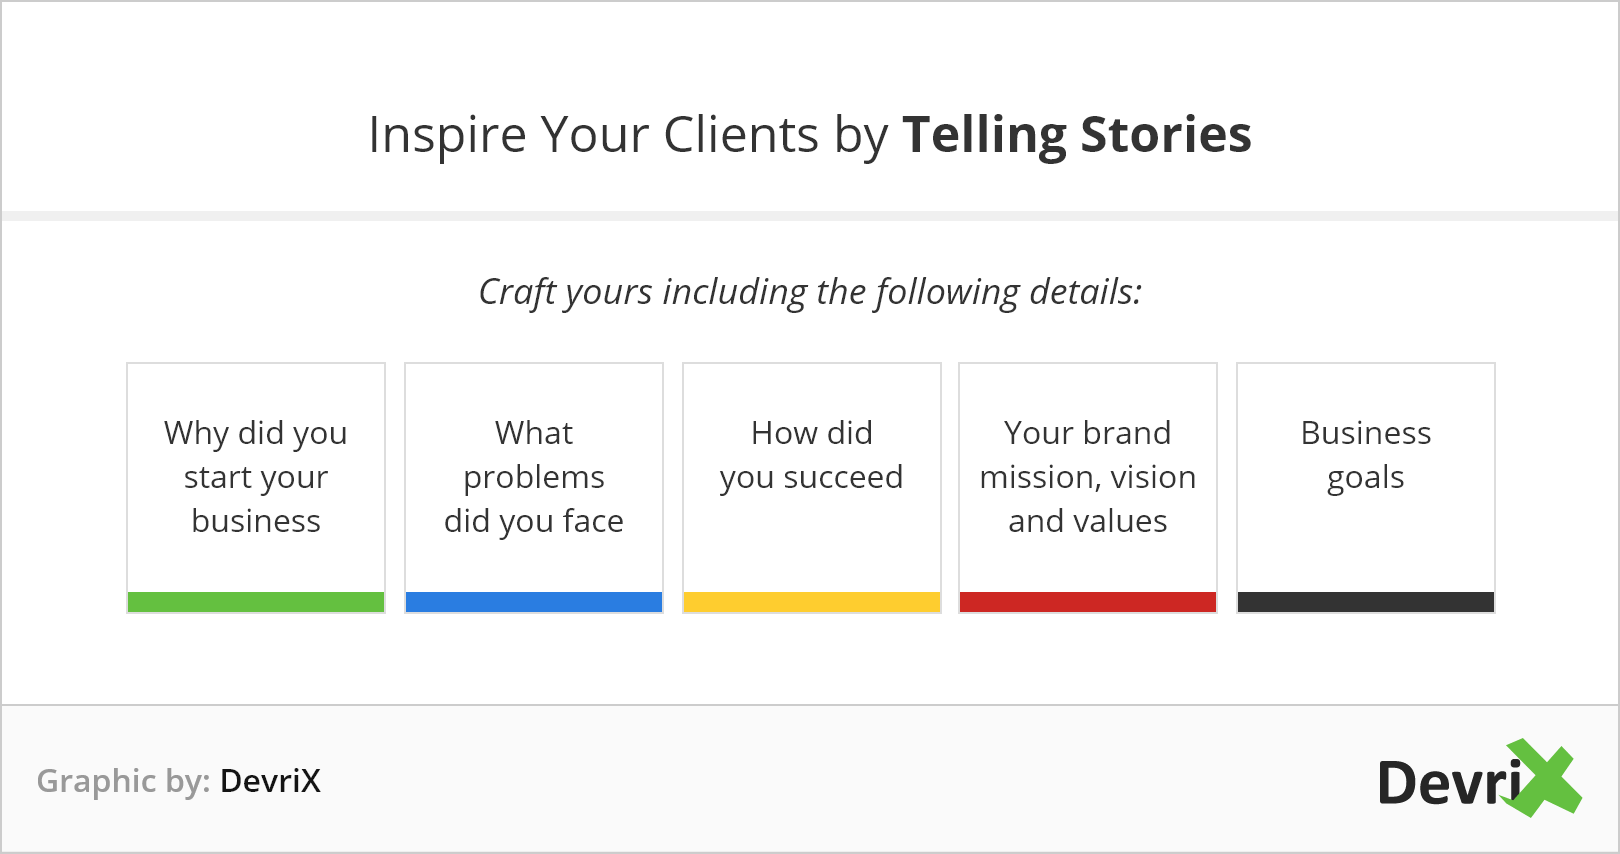 Inspire clients by telling stories